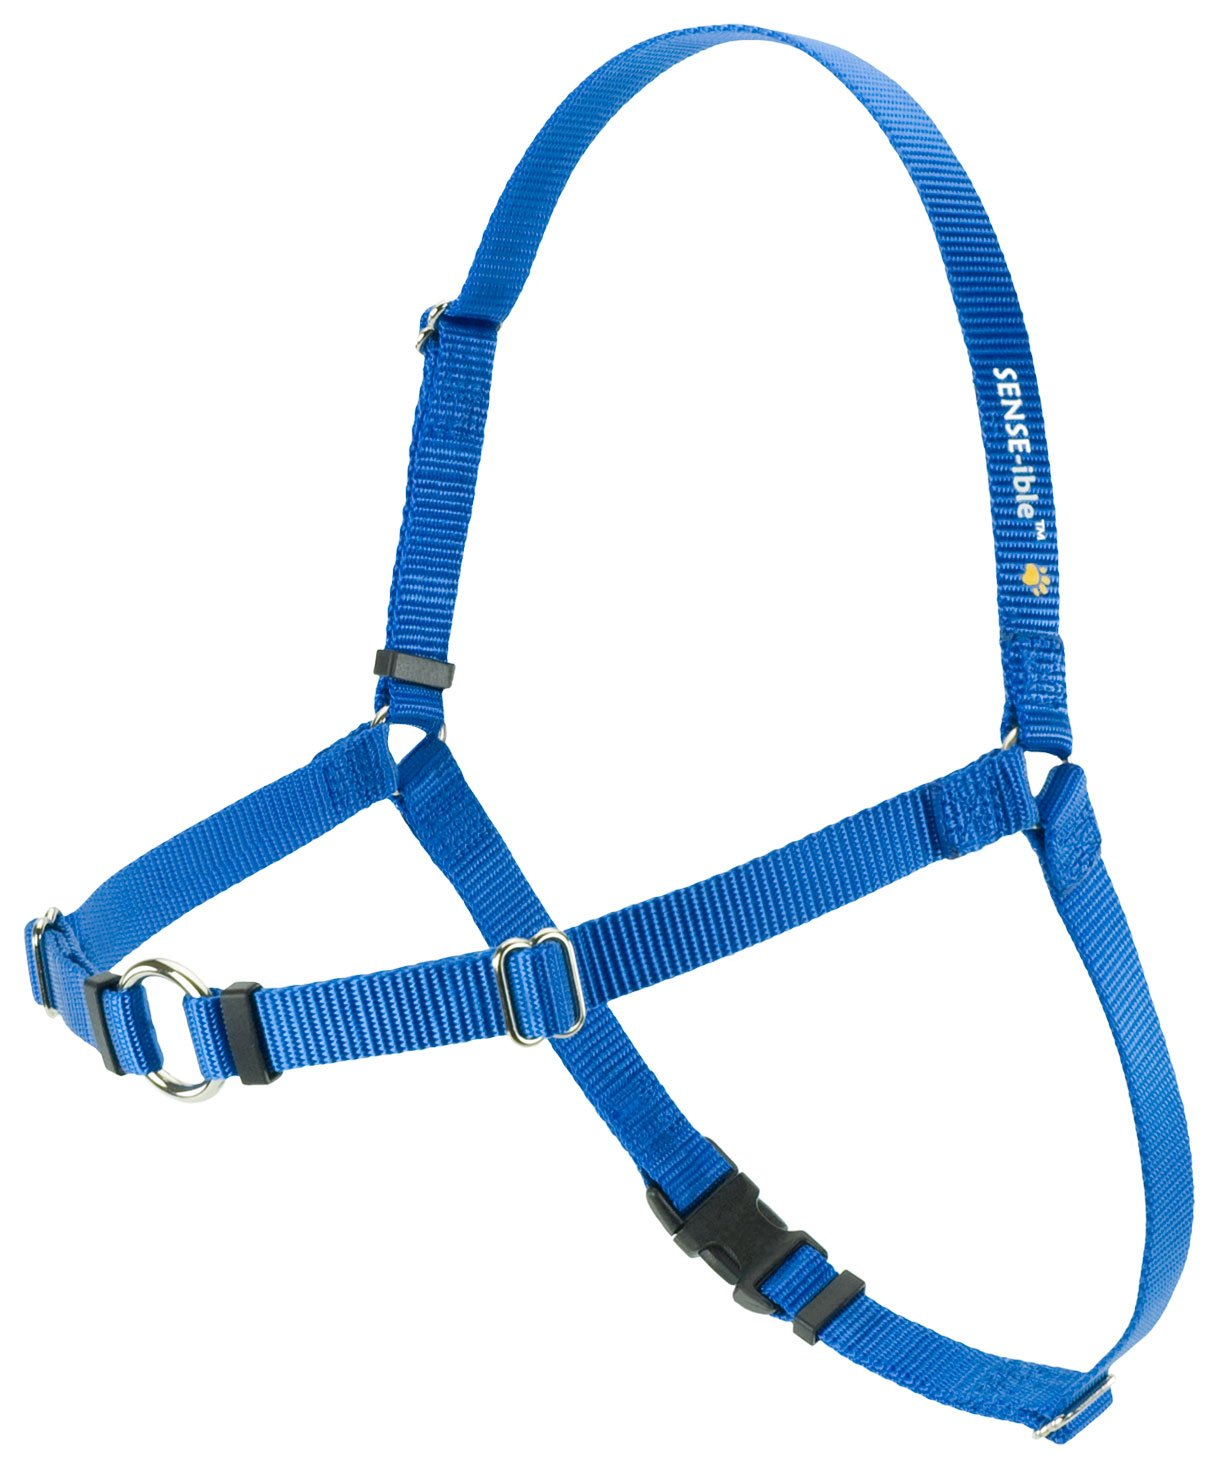 Sense Ible No Pull Dog Harness Red Medium By Softouch Rib Clip Wiring Pet Halter Harnesses Supplies